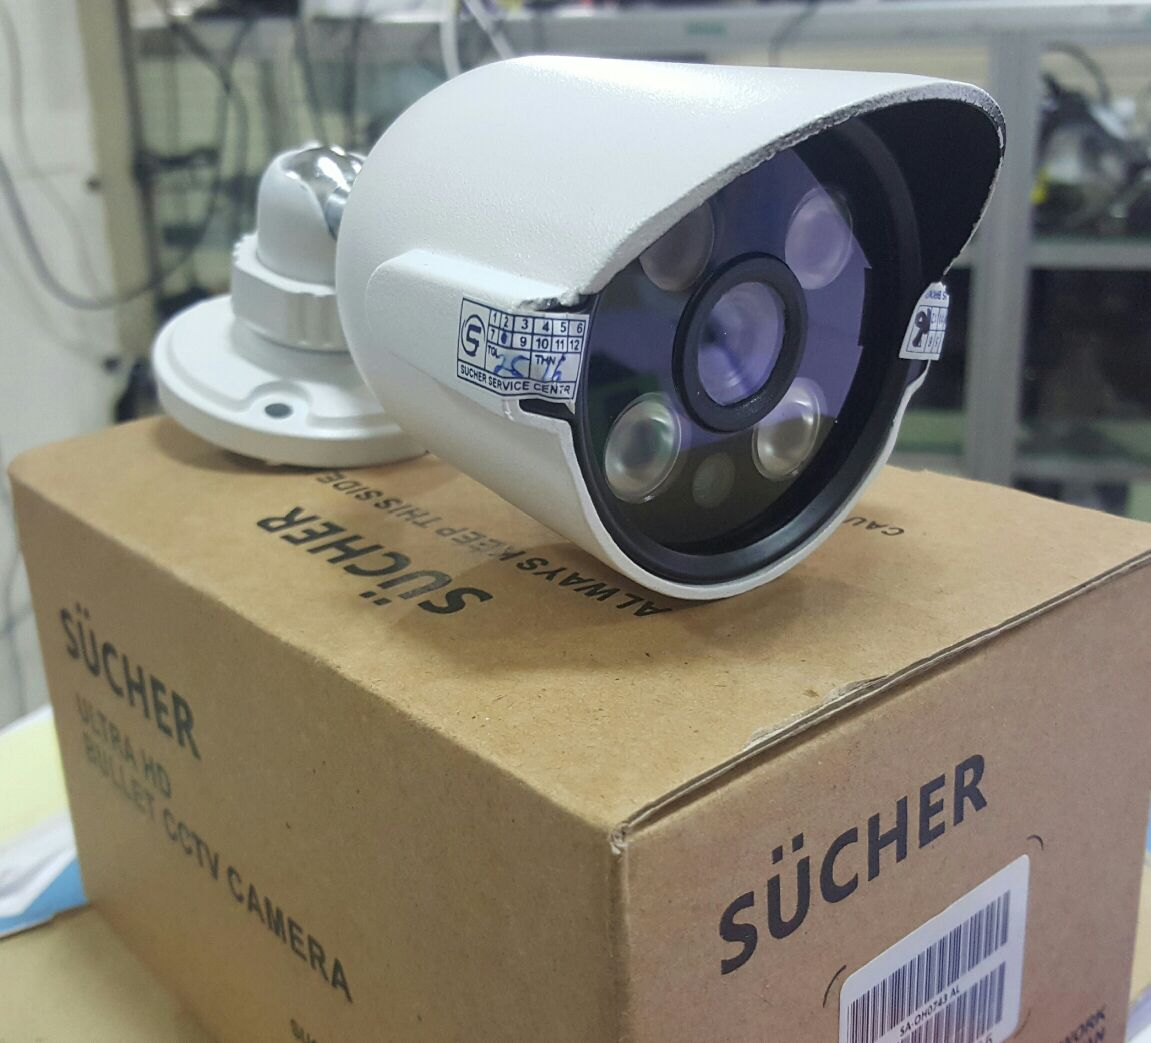 kamera sucher outdoor 13mp